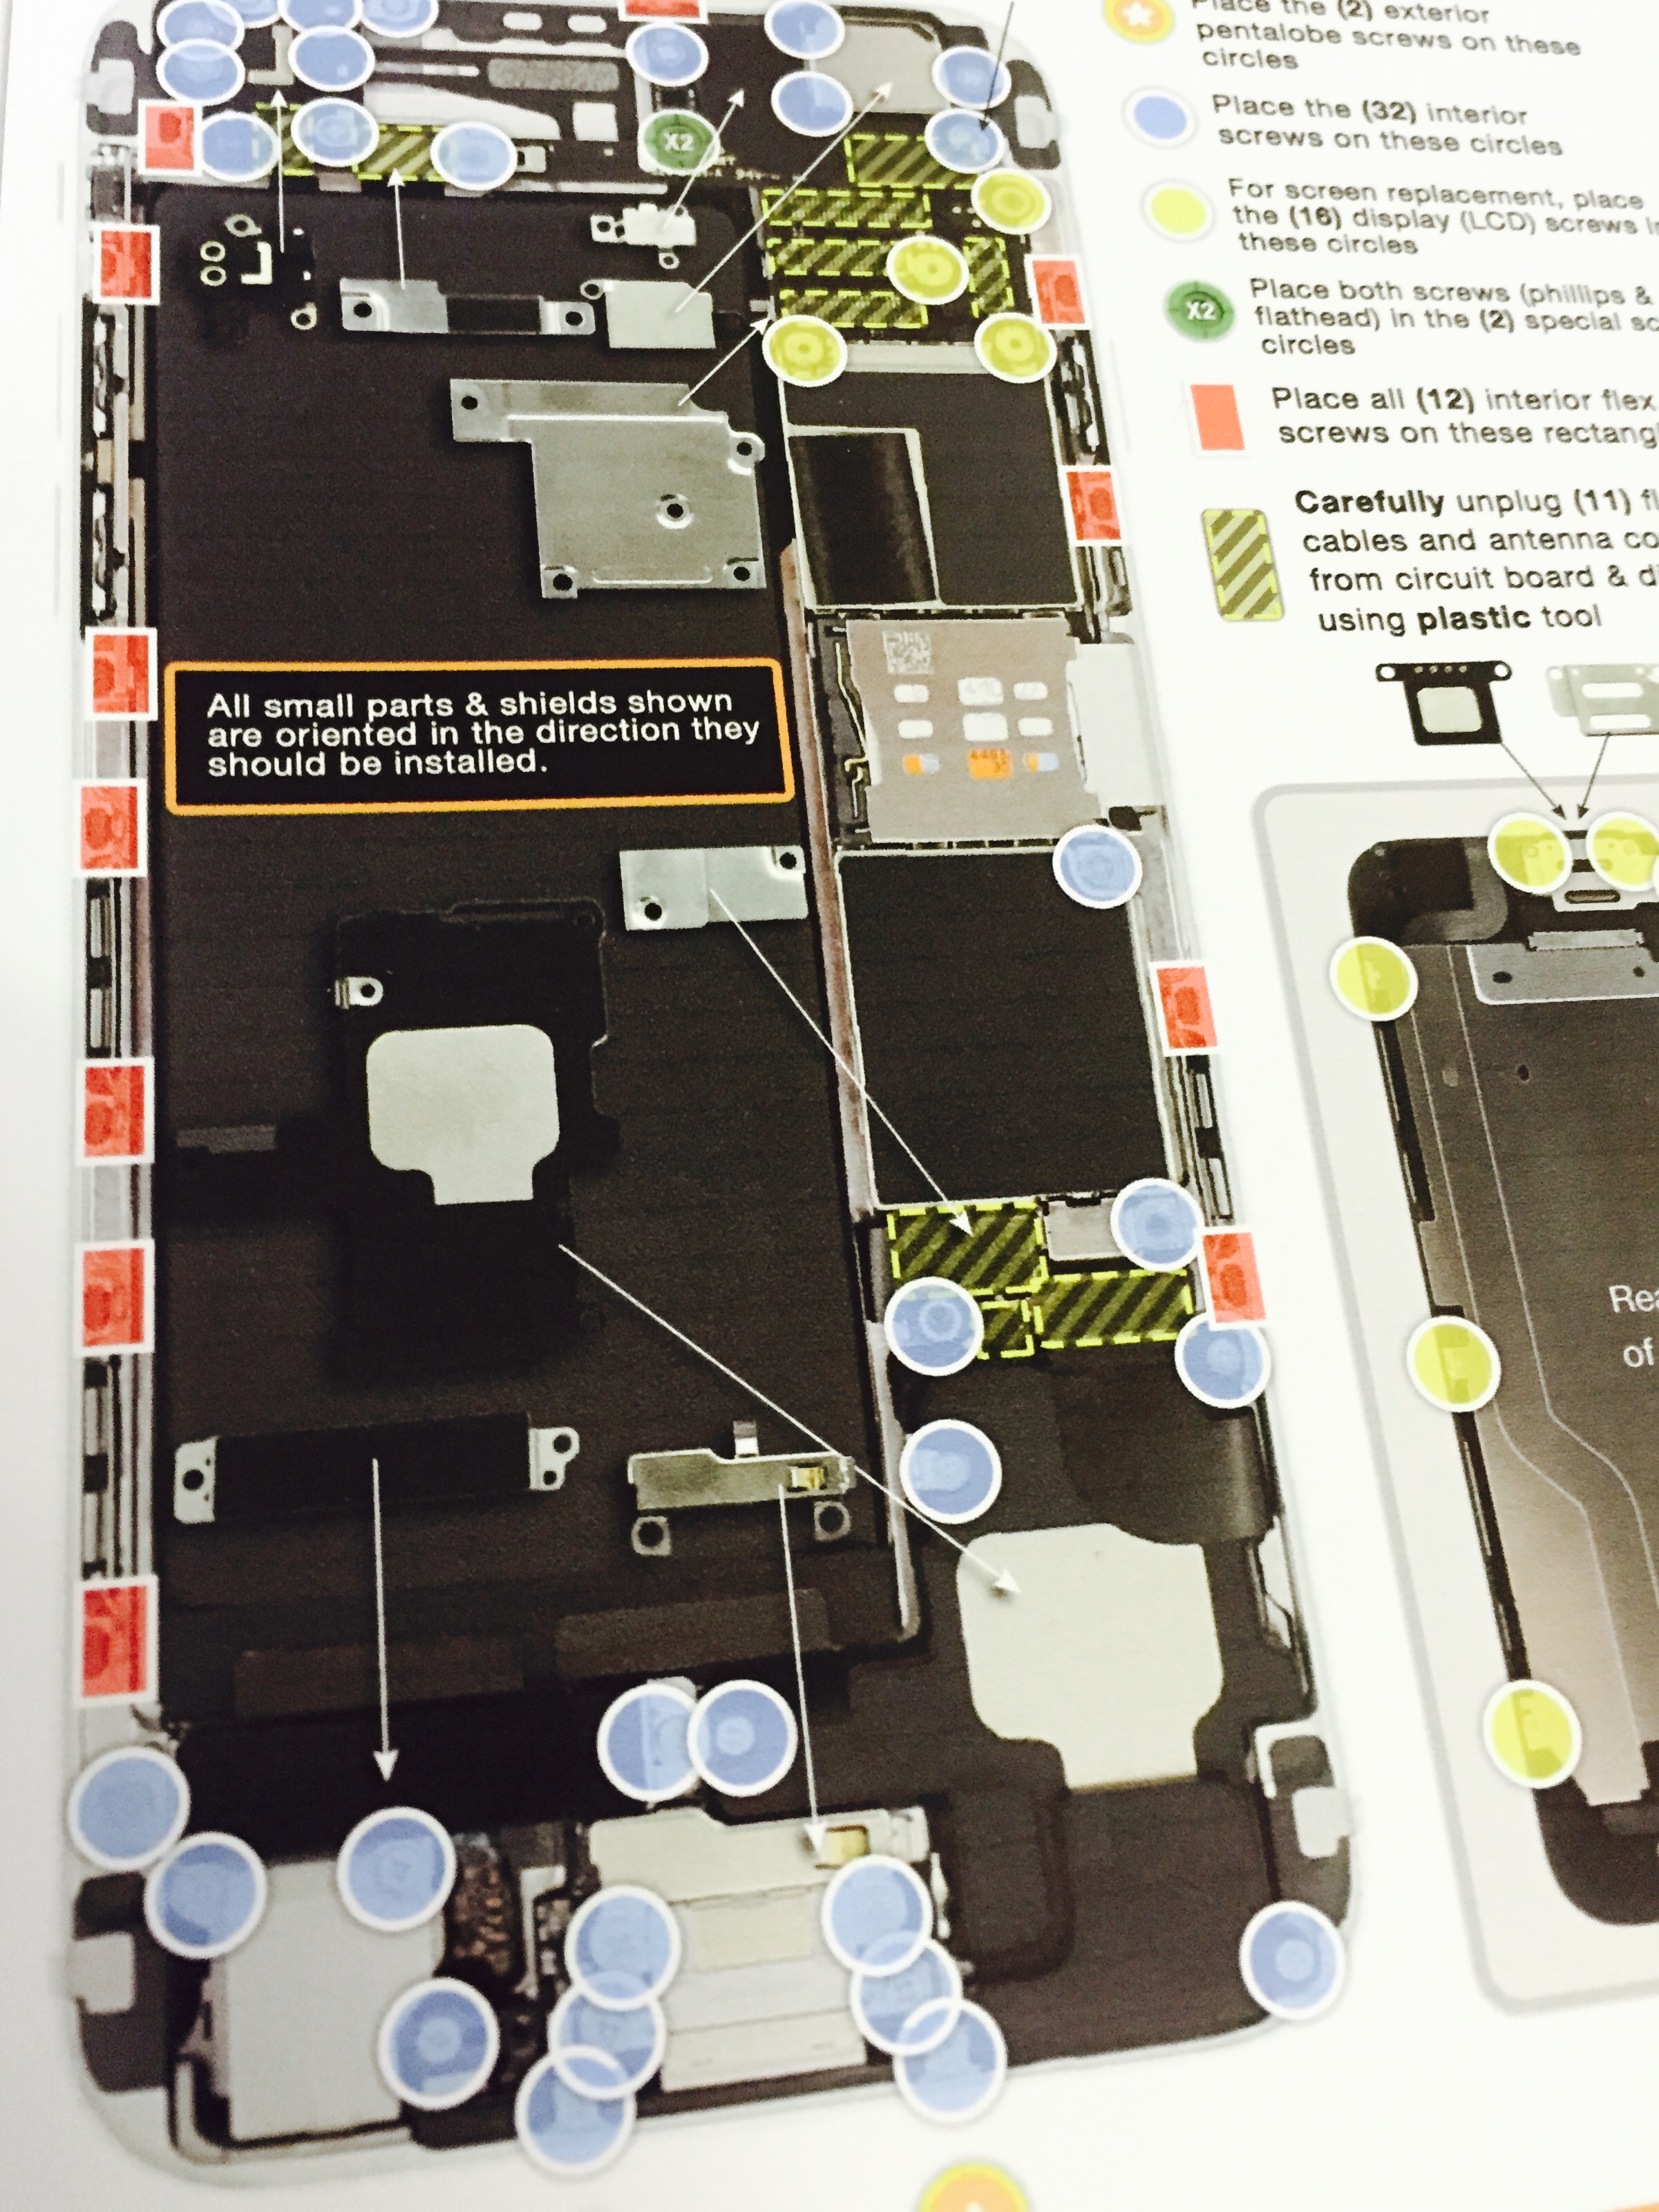 iphone 4 screw layout diagram white house repair archives etech parts plusetech plus